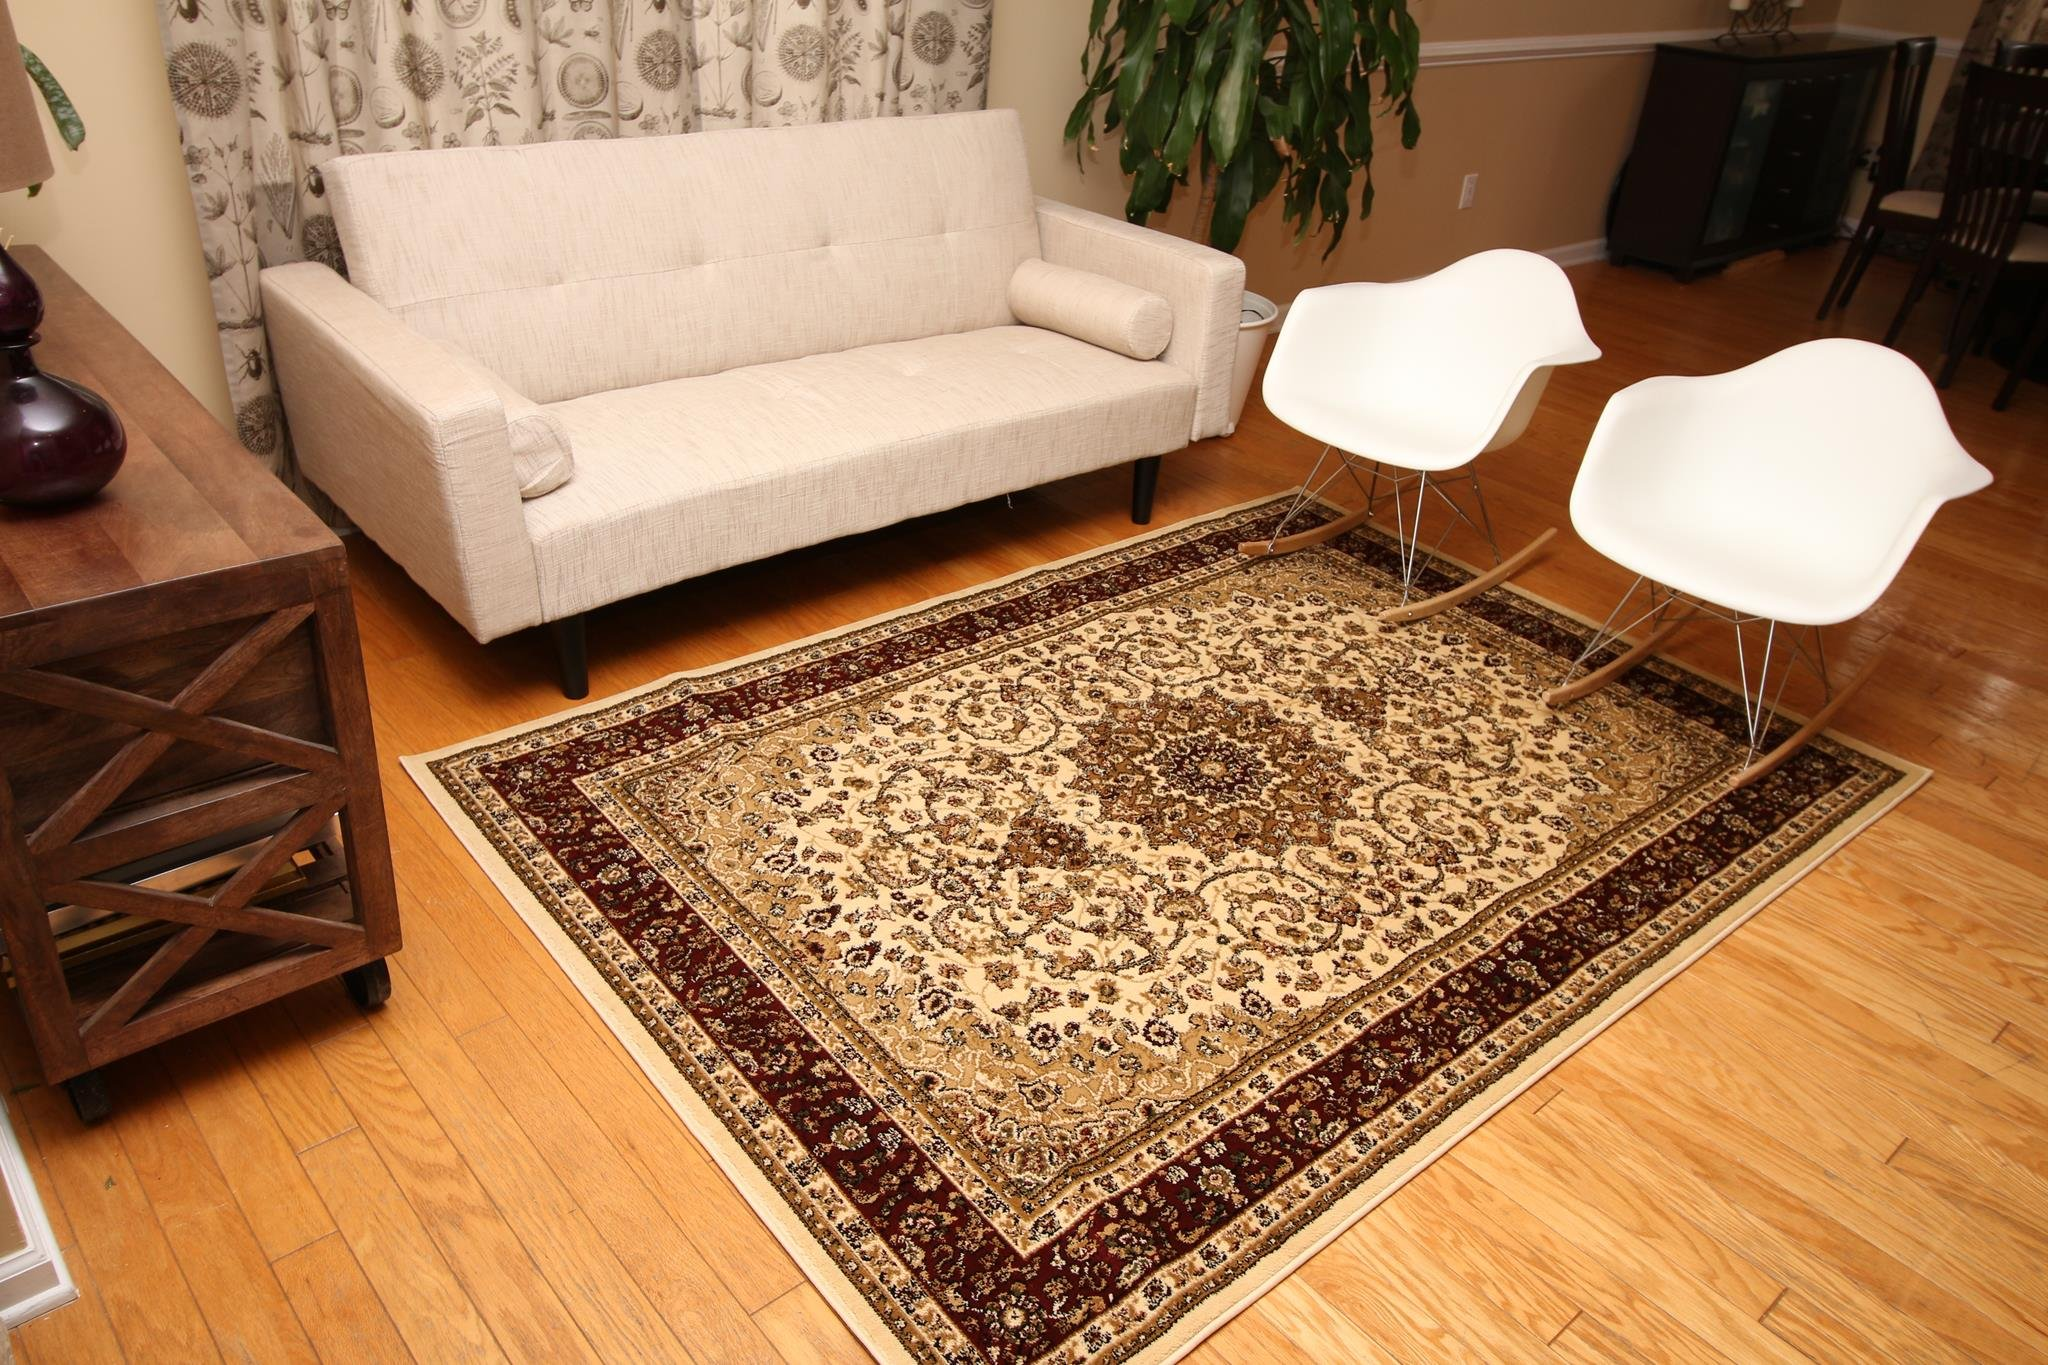 Feraghan/New City Traditional Isfahan Wool Persian Area Rug, 2' x 3', Cream